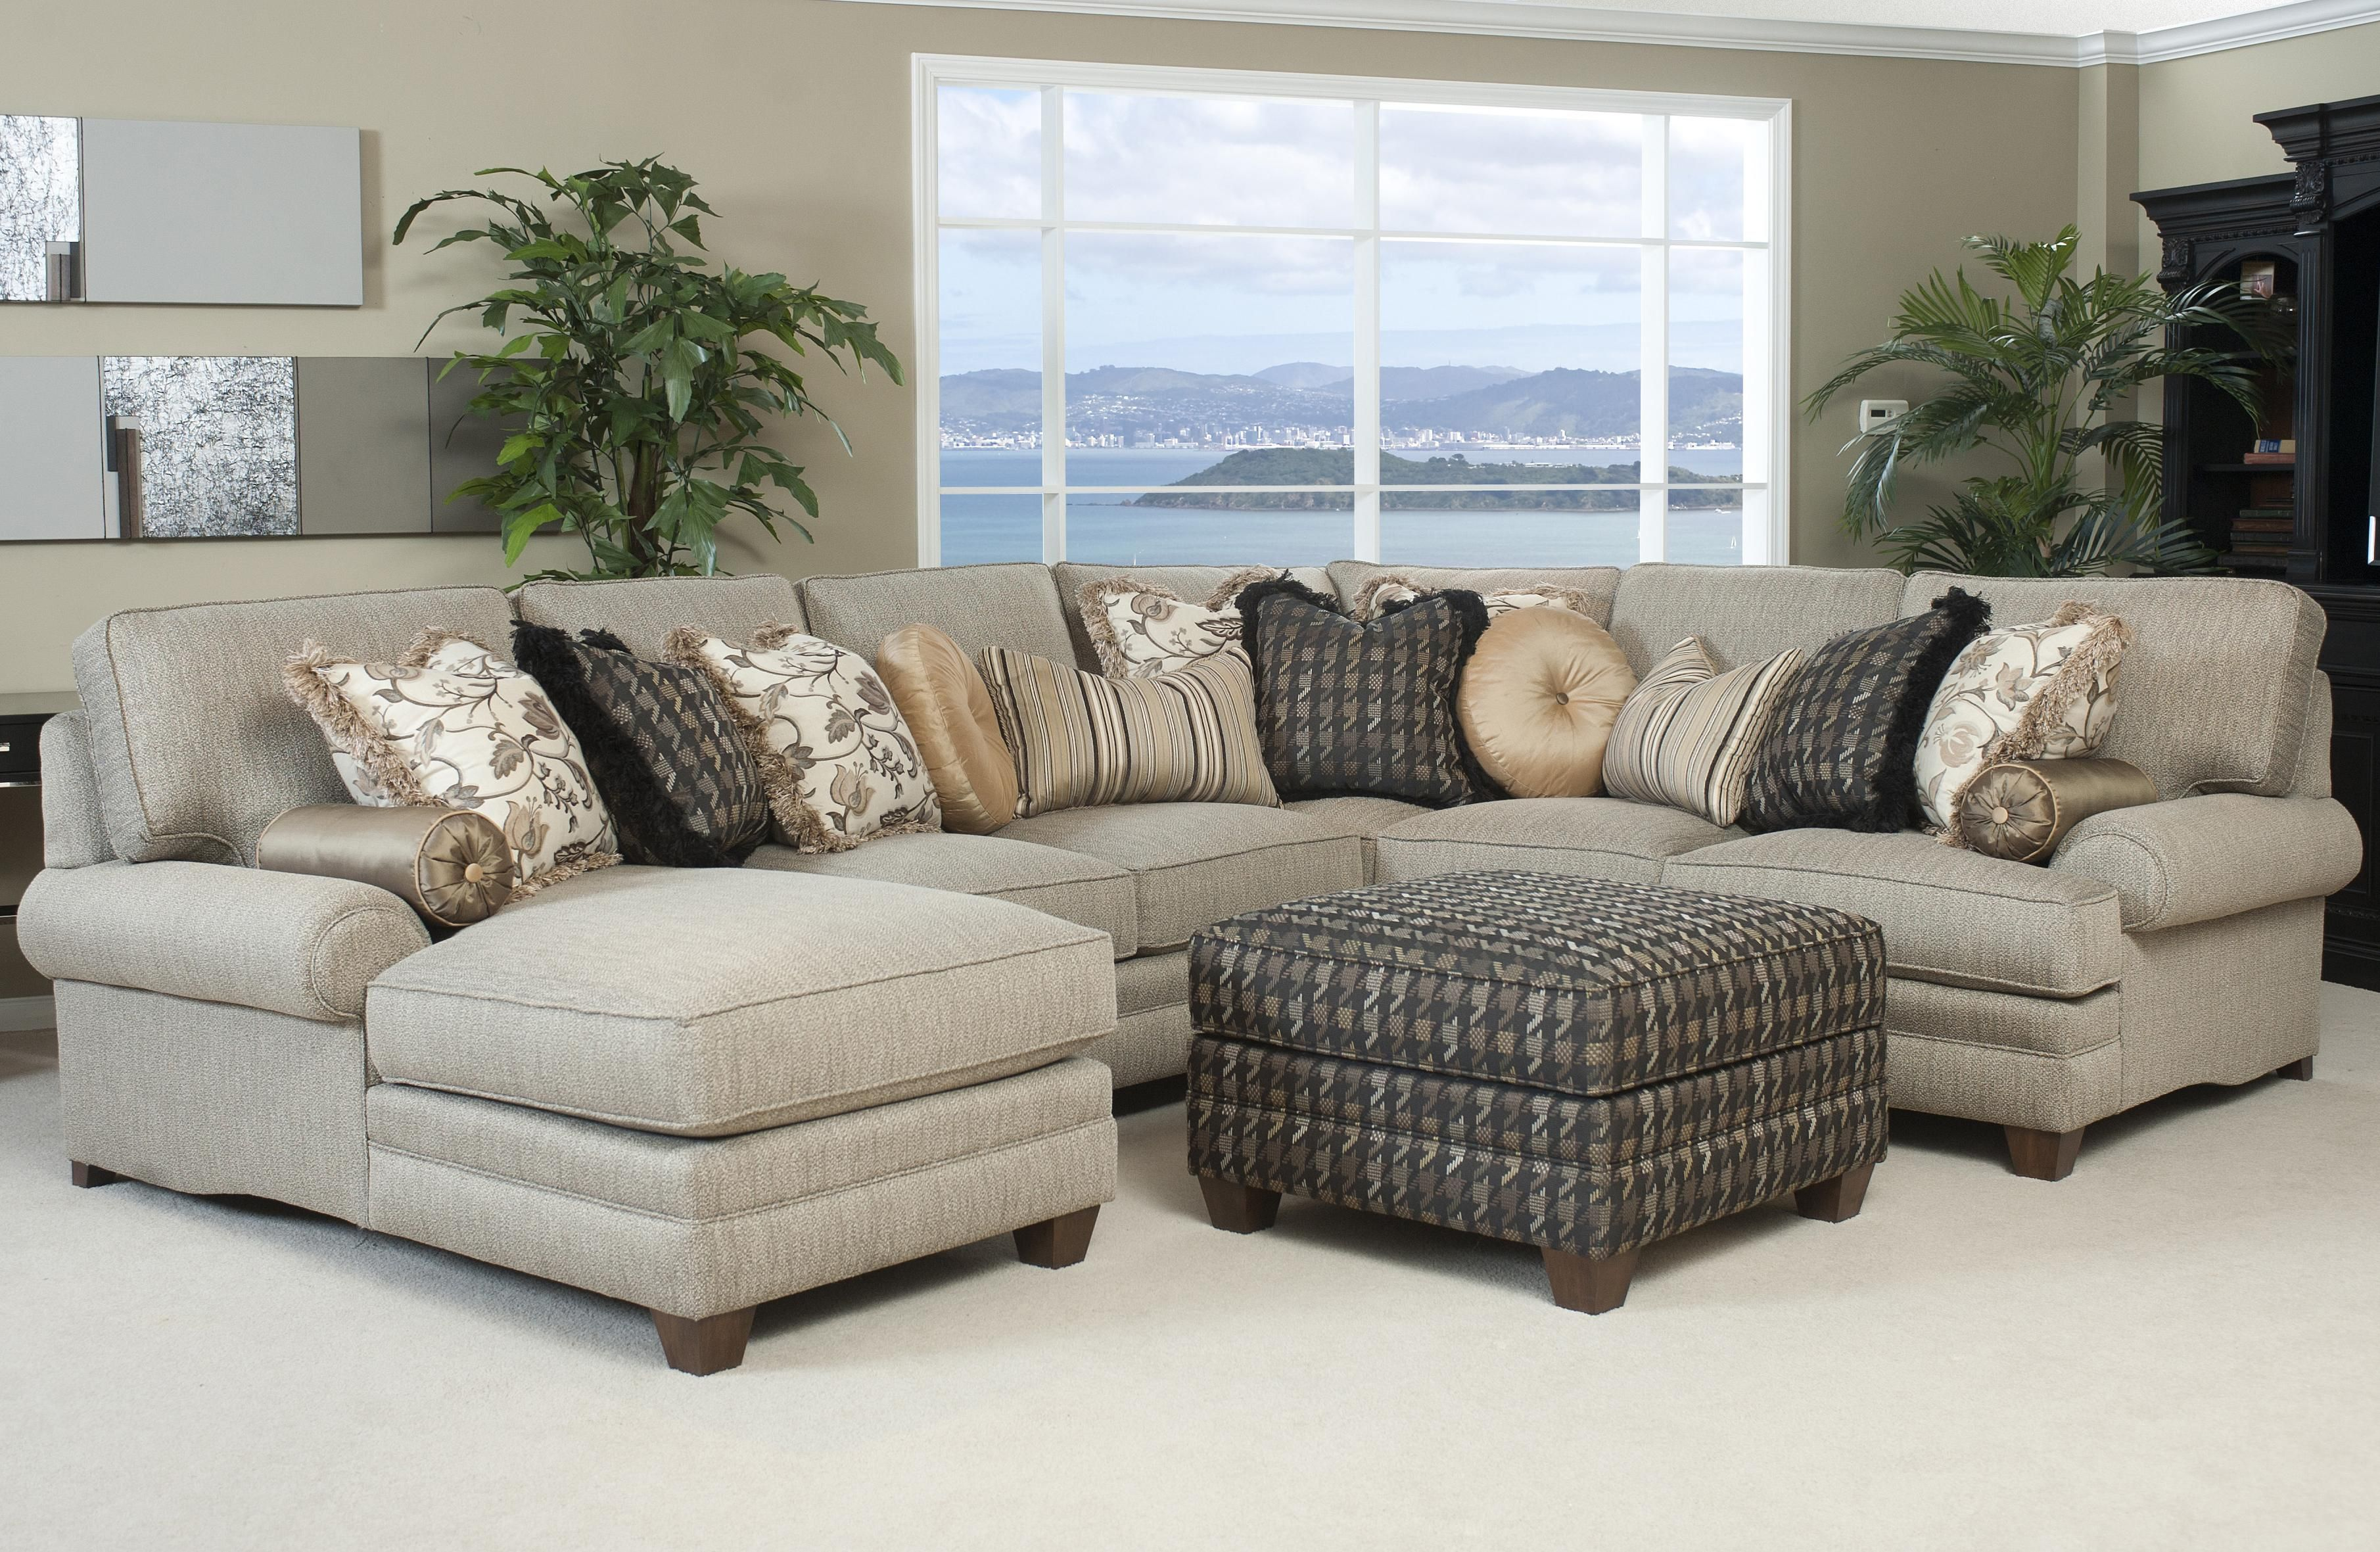 Most fortable Sectional Sofa With Chaise